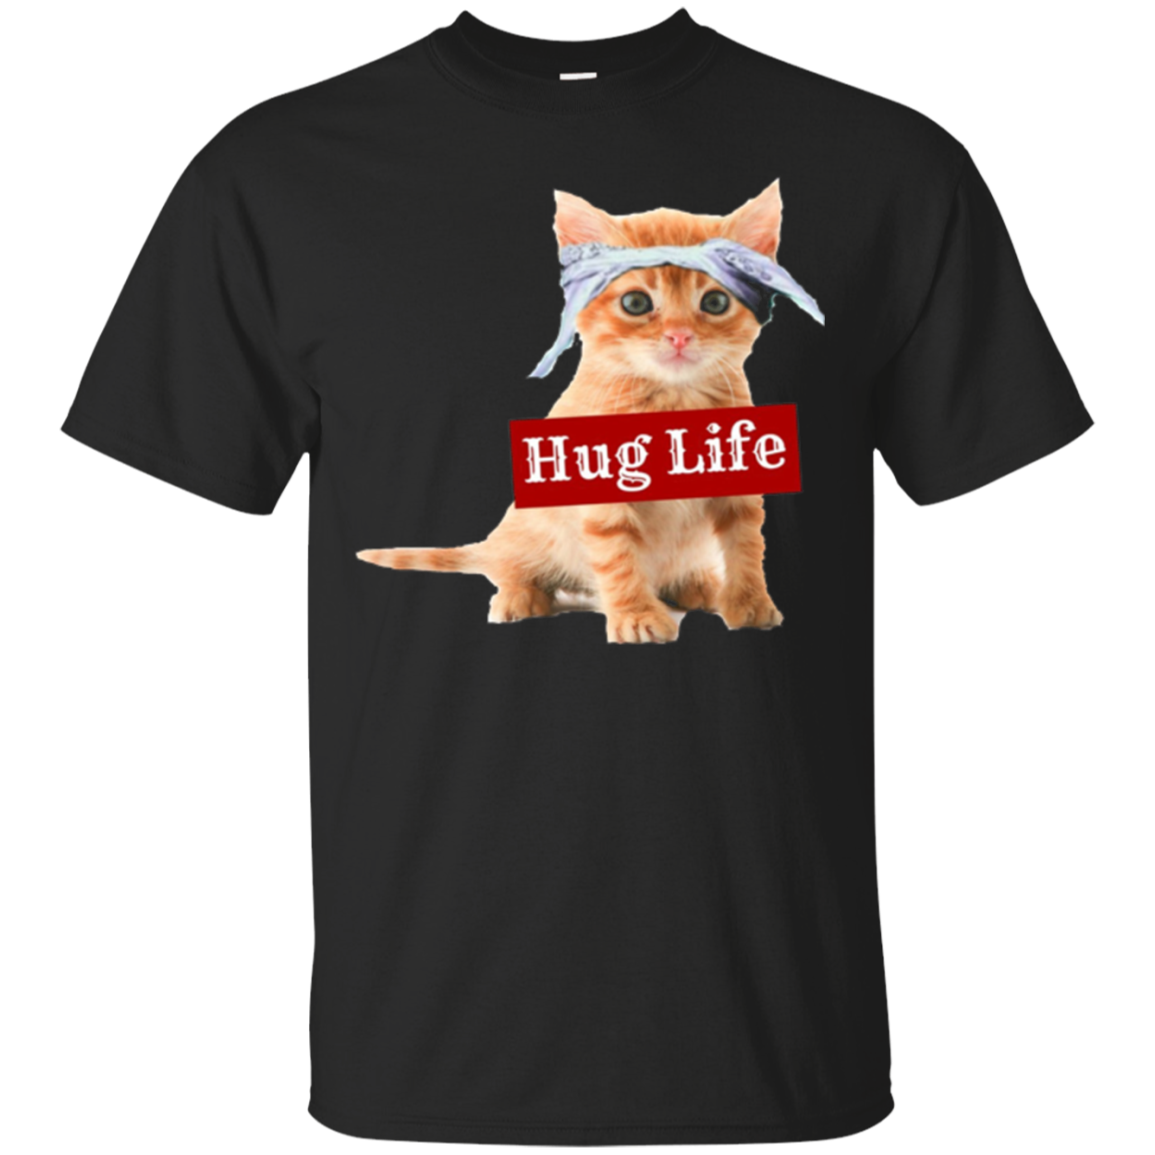 Hug life kitty cat thug gansta kitten kitteh t shirt funny